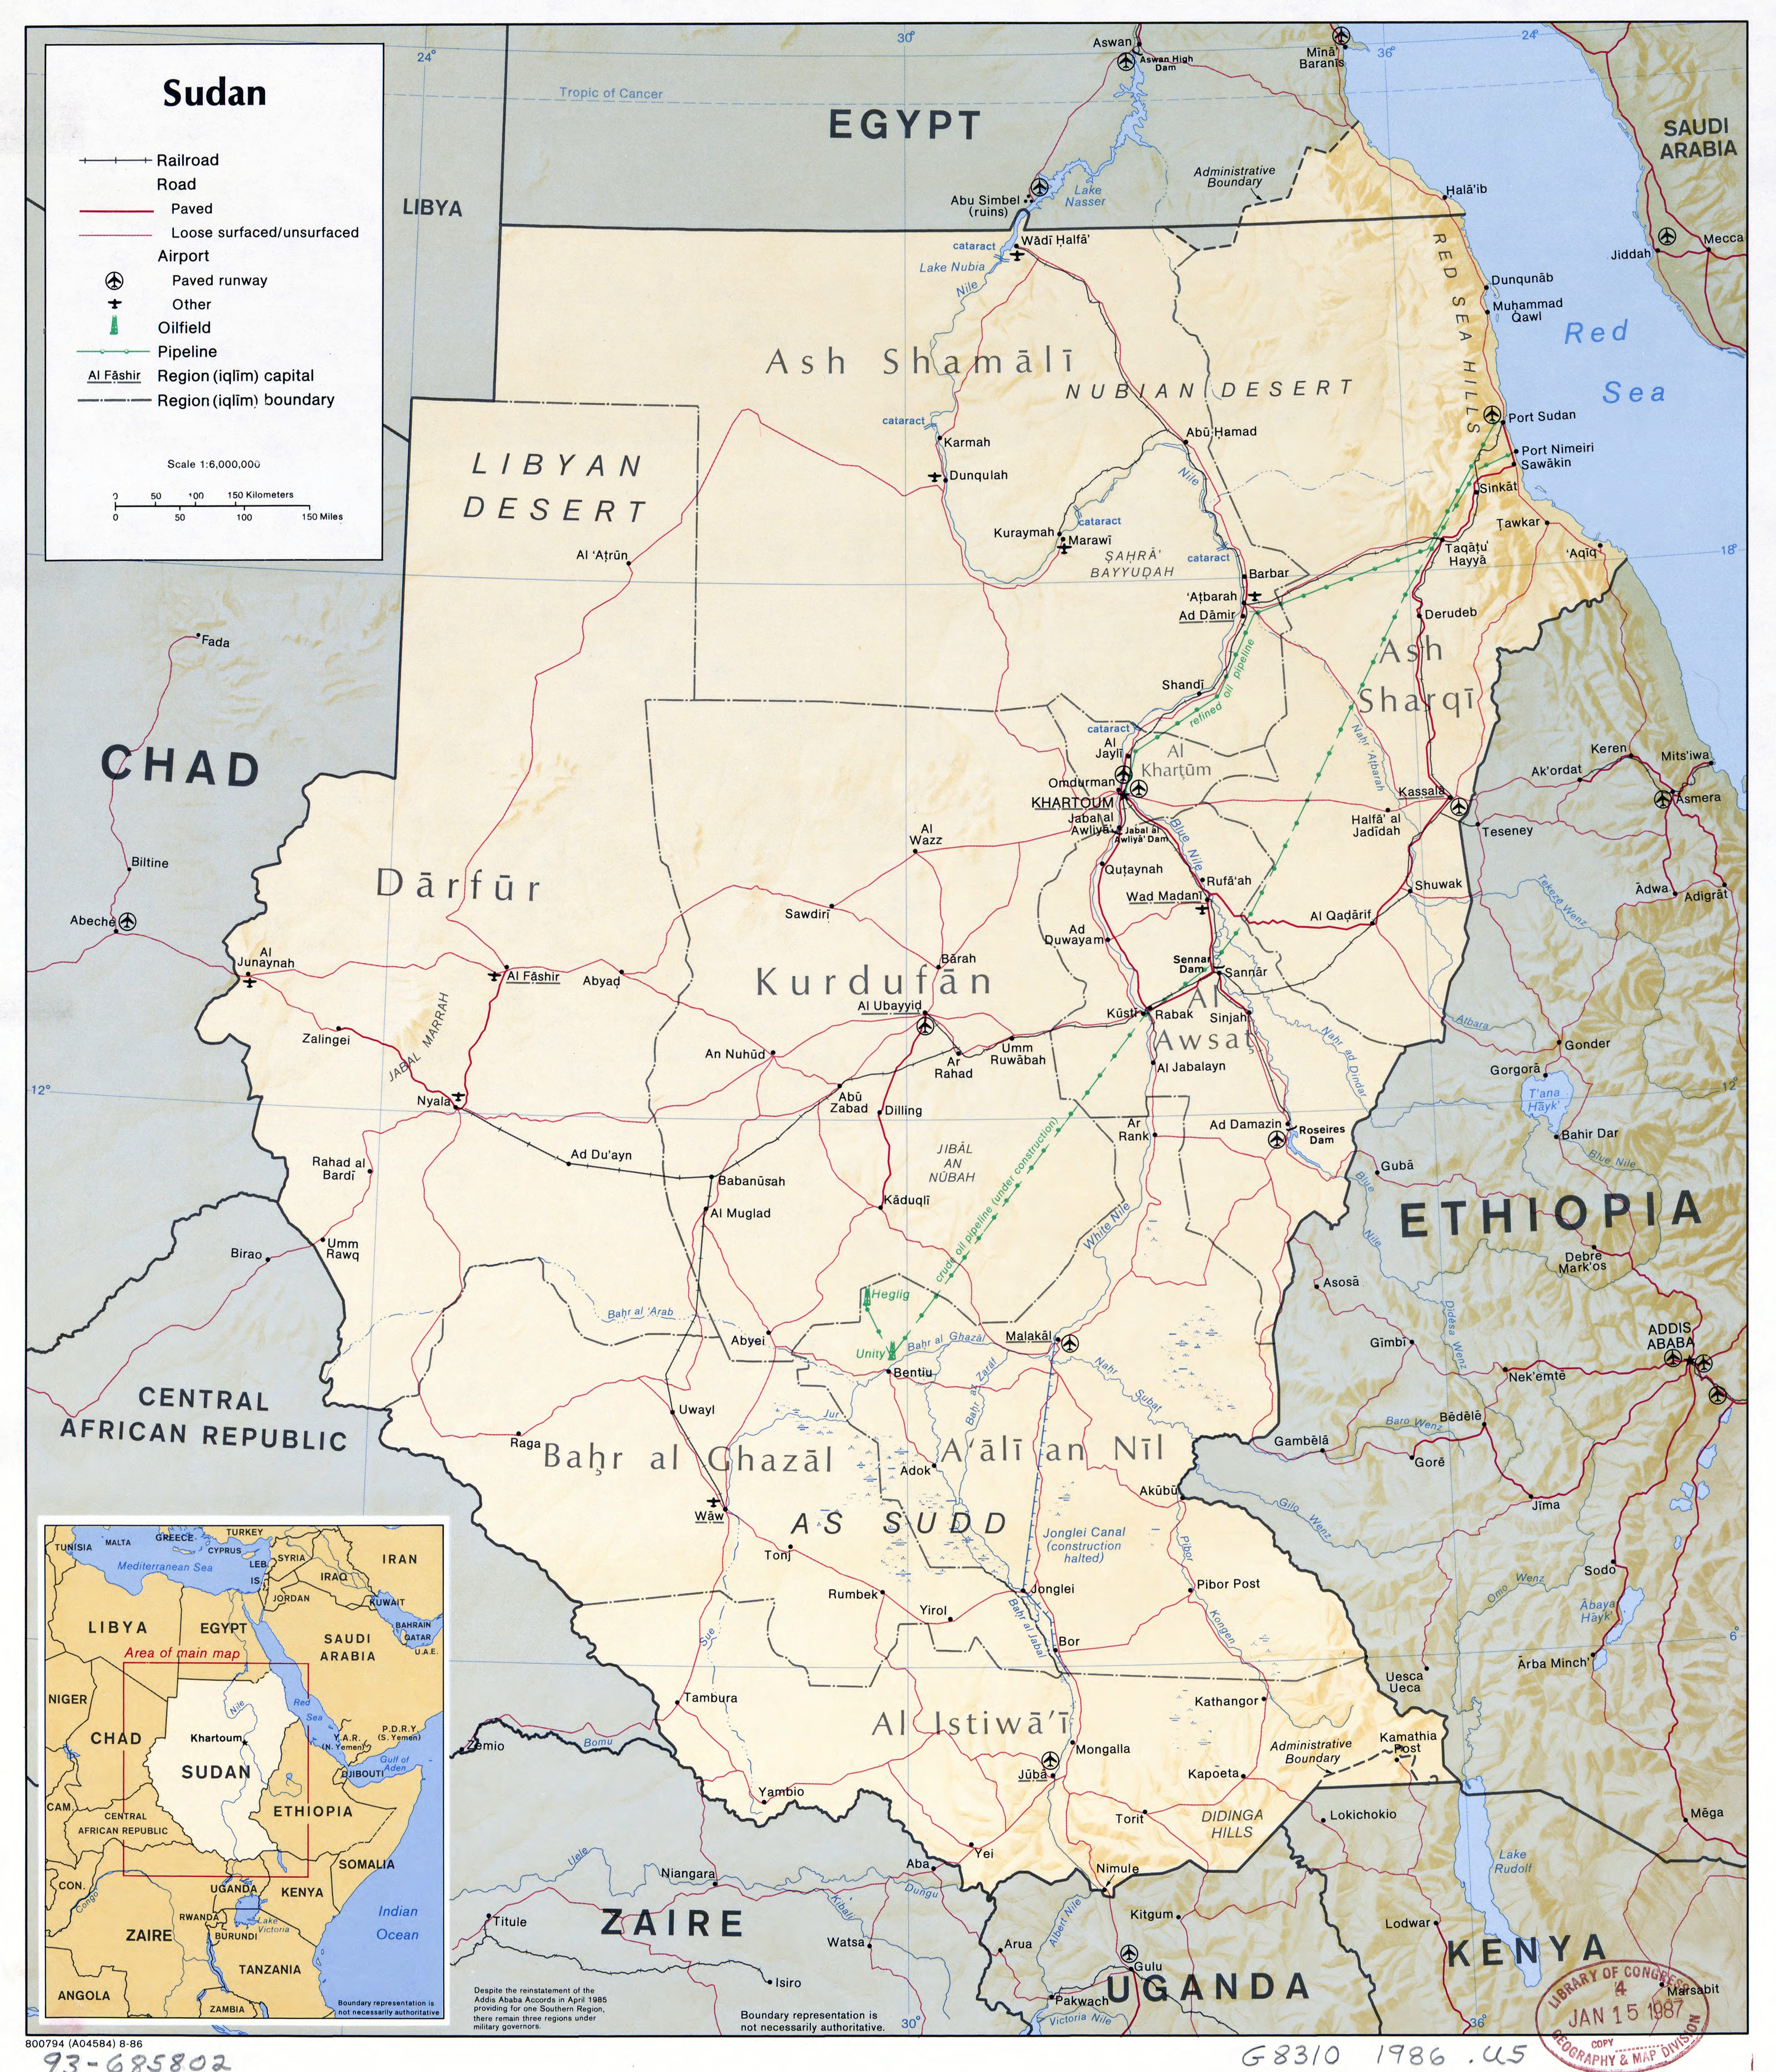 Large scale political map of Sudan with relief roads railroads